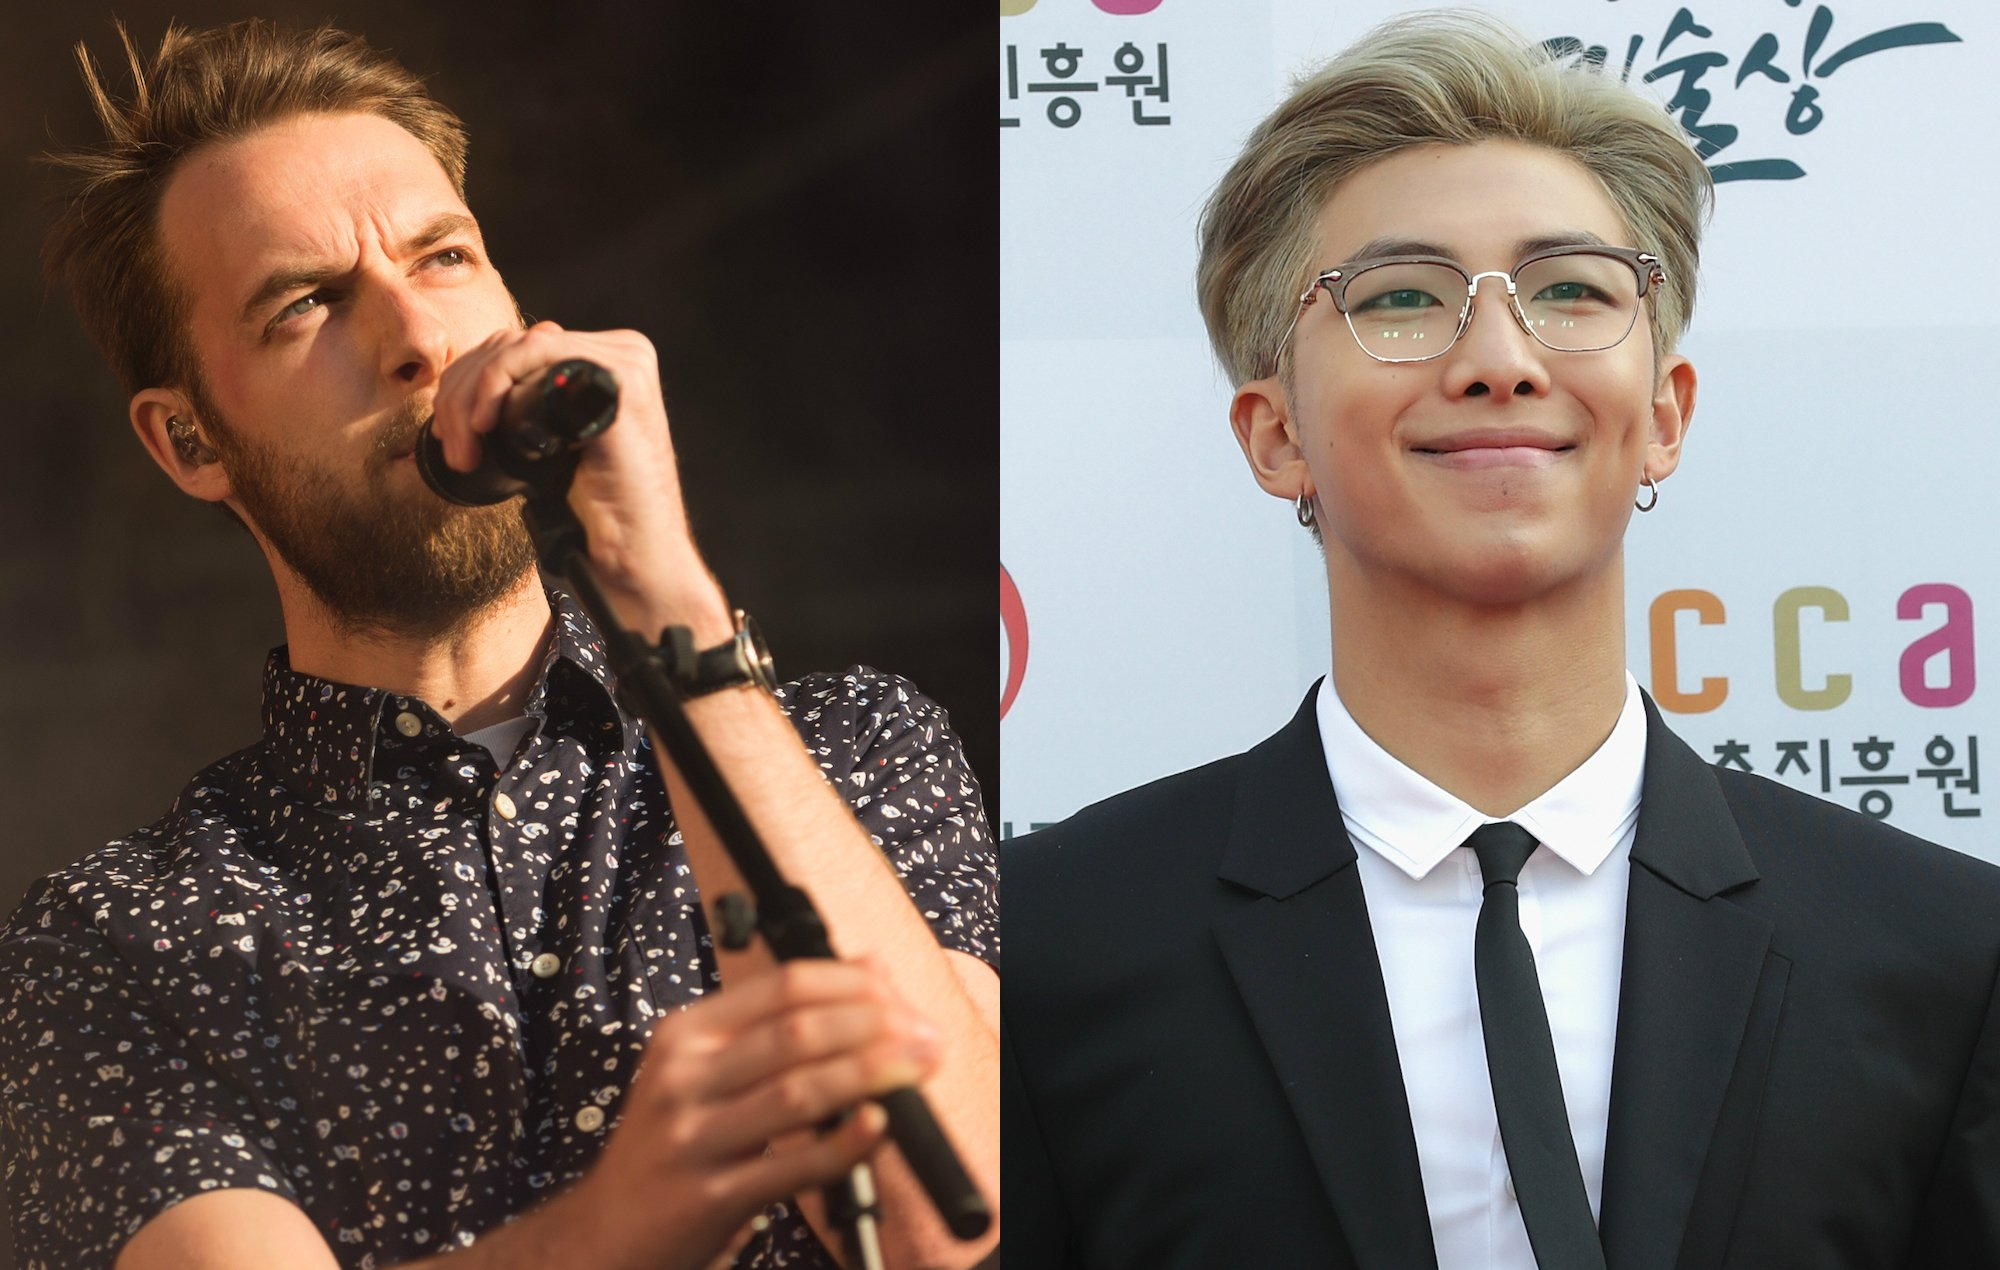 .@helloHonne tease release date for new collaboration with @BTS_twt's RM https://t.co/CJMvuNsxhY https://t.co/JiHq27jEbc